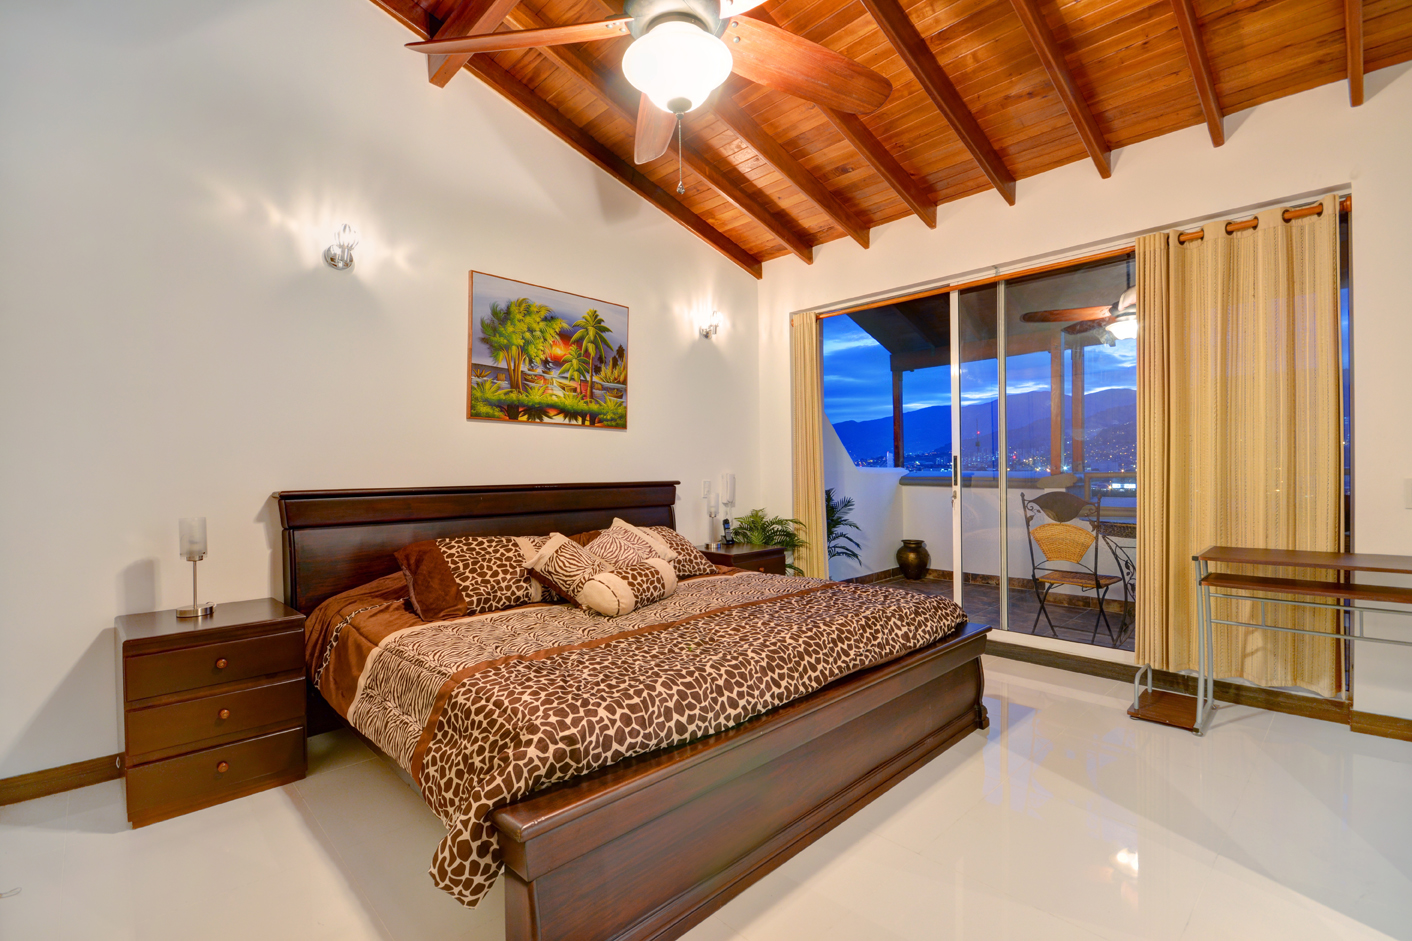 Bedroom 1 with adjacent covered deck, high ceilings and ceiling fan.